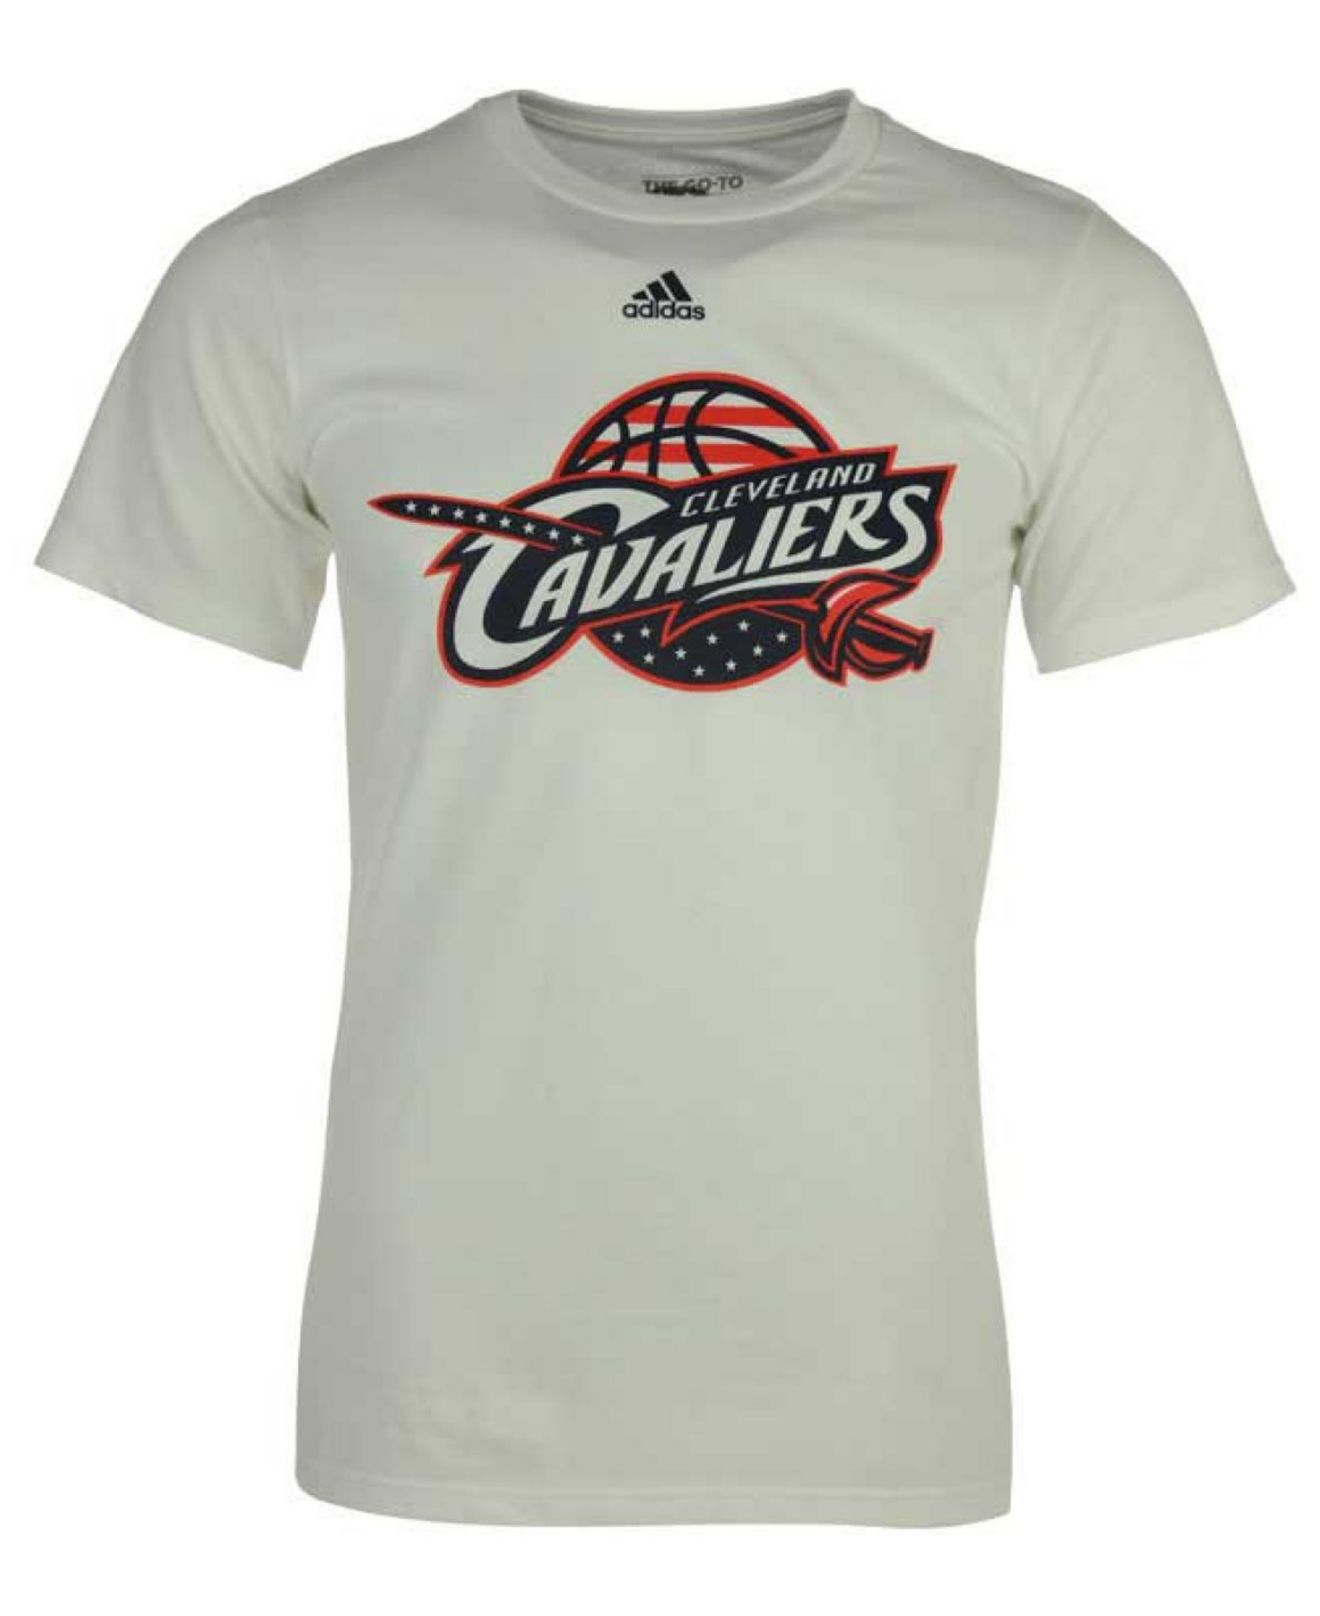 promo code 7b5a5 f5e9d Lyst - adidas Originals Men s Cleveland Cavaliers Hoops For Troops T ...